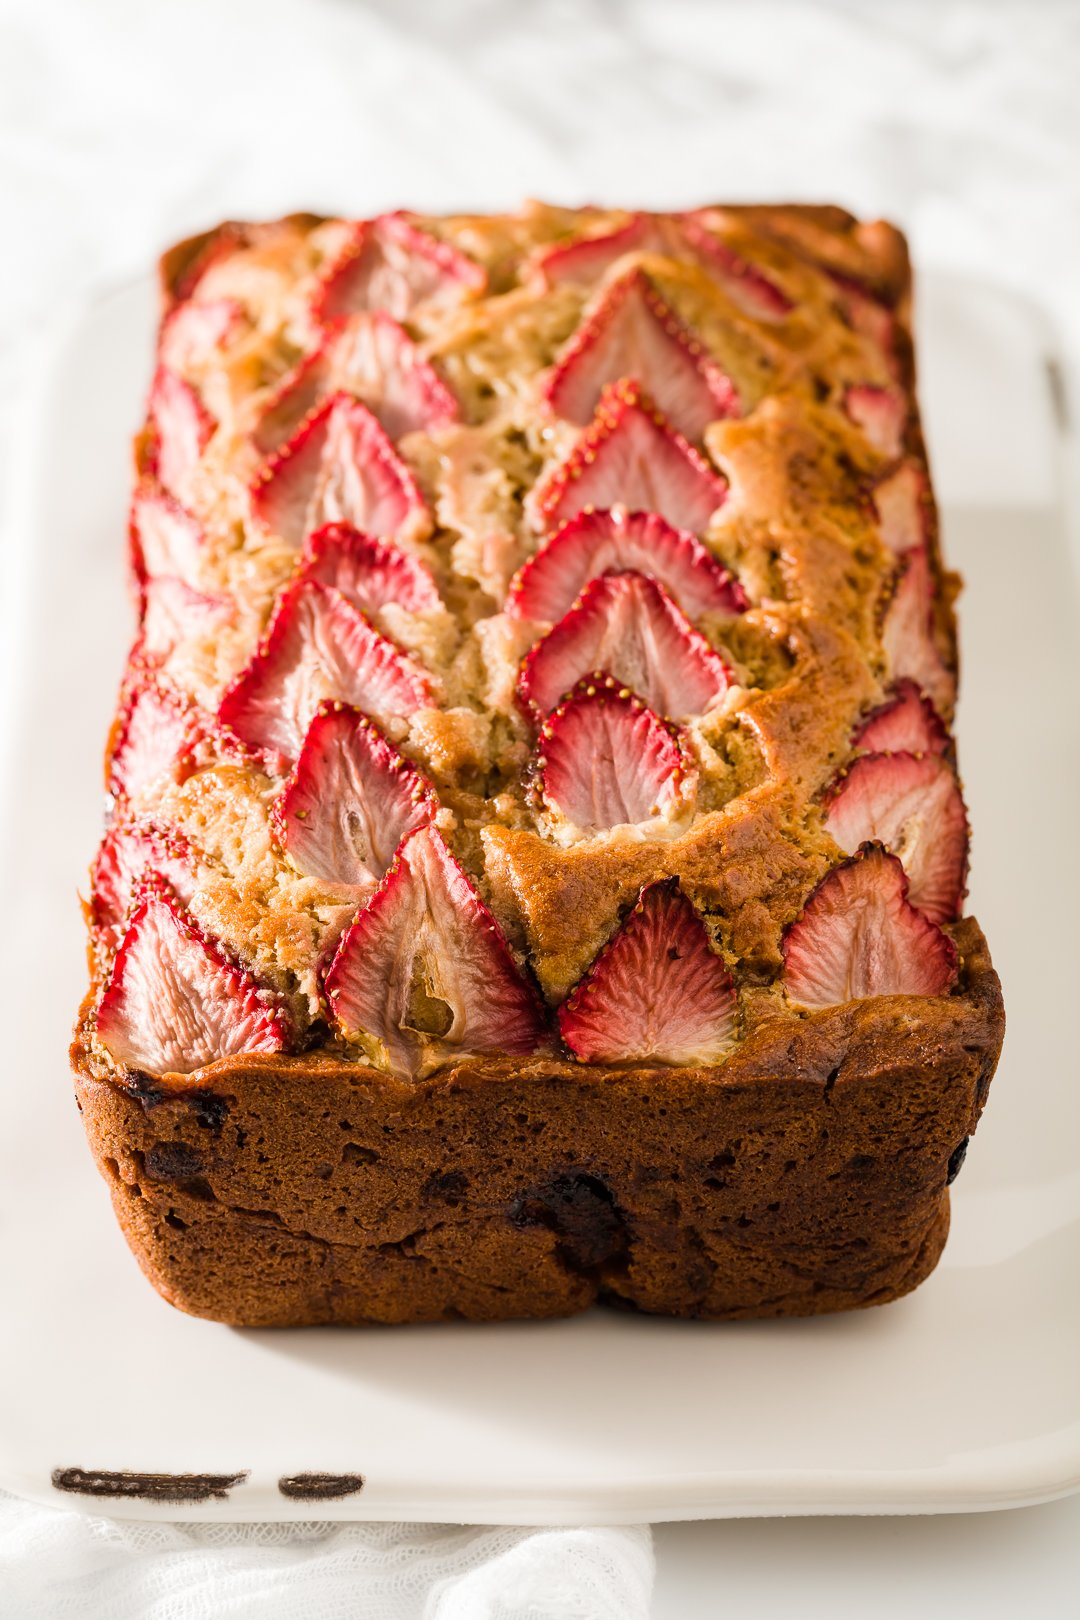 Unsliced loaf of strawberry banana bread